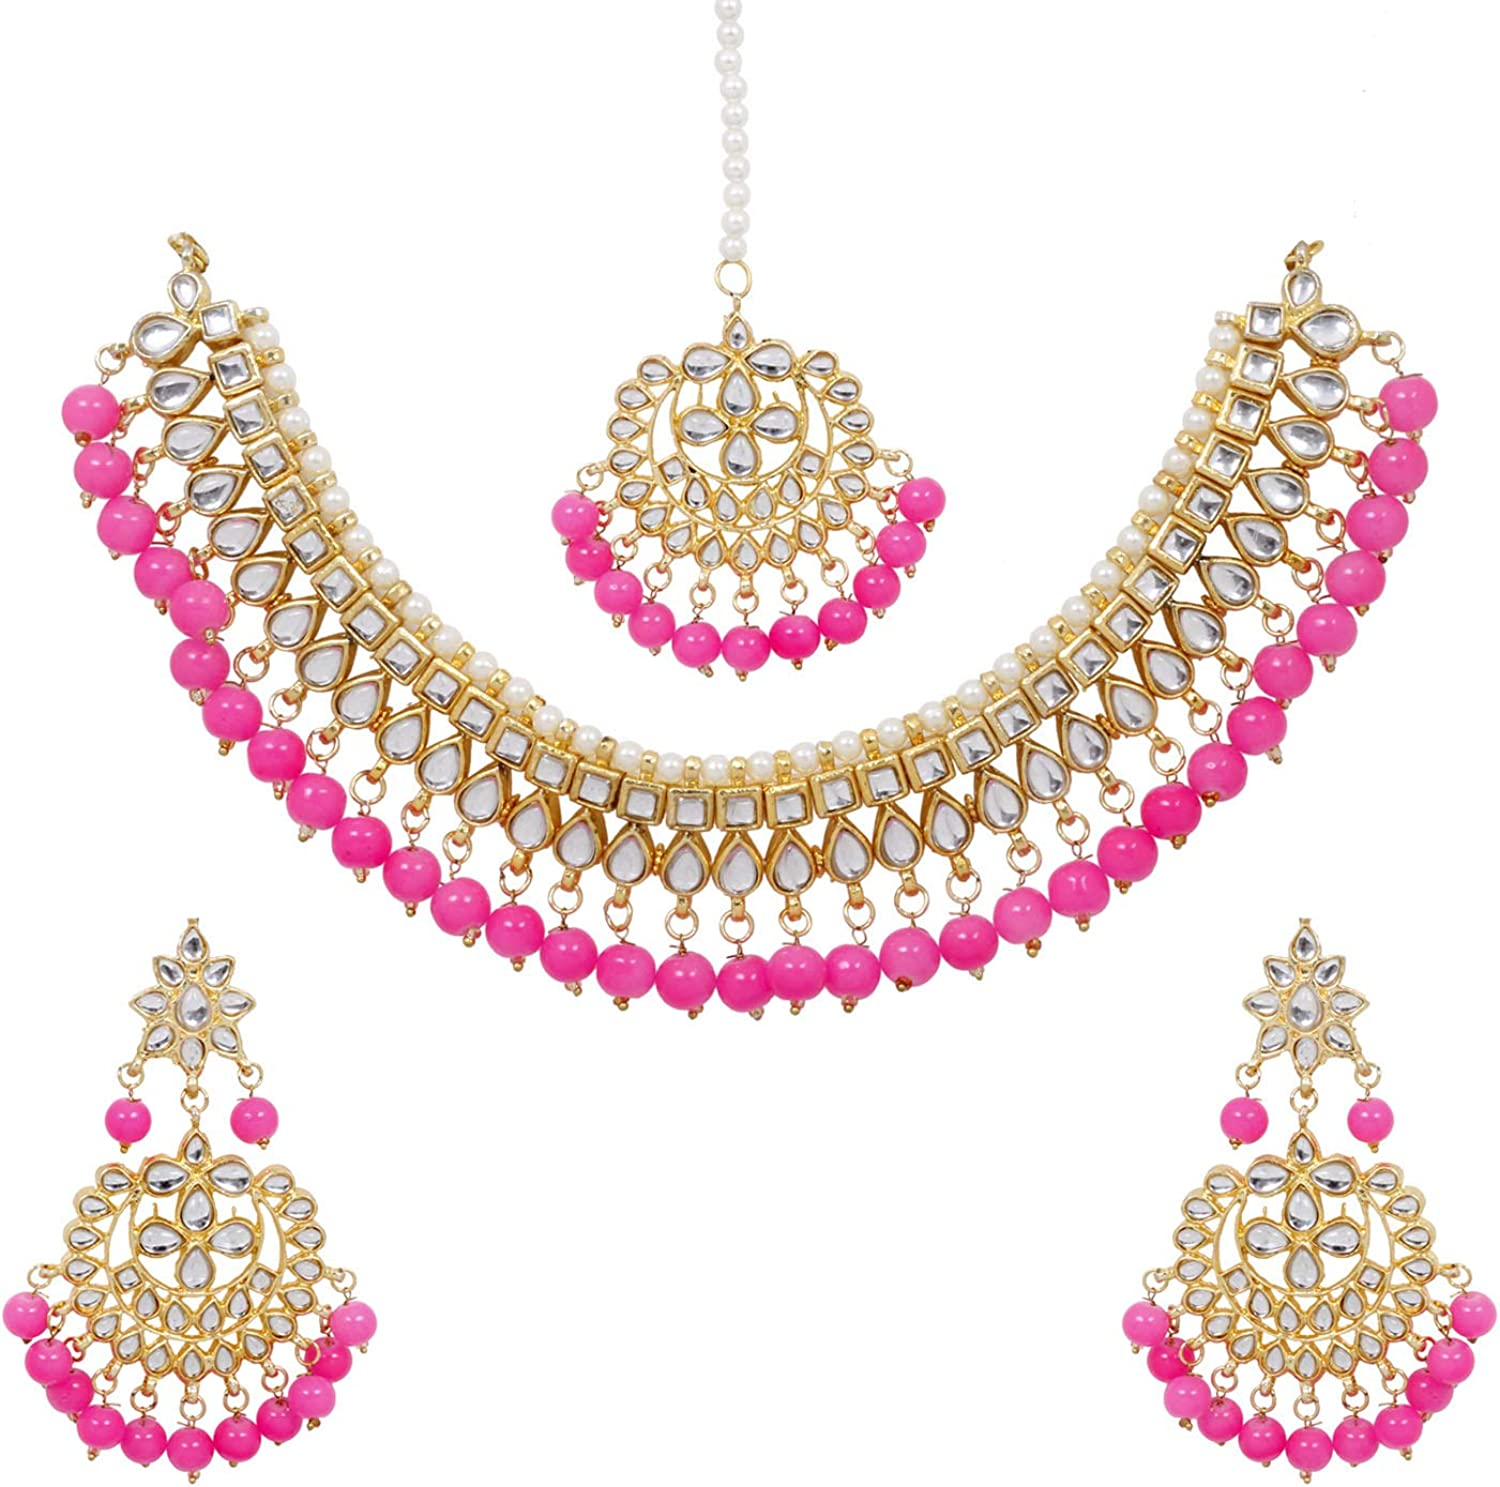 SANARA Indian Bollywood Traditional Pink Kundan and Pearl Made Bridal Designer Jewelry Choker Necklace Set for Women & Girl Jewelry